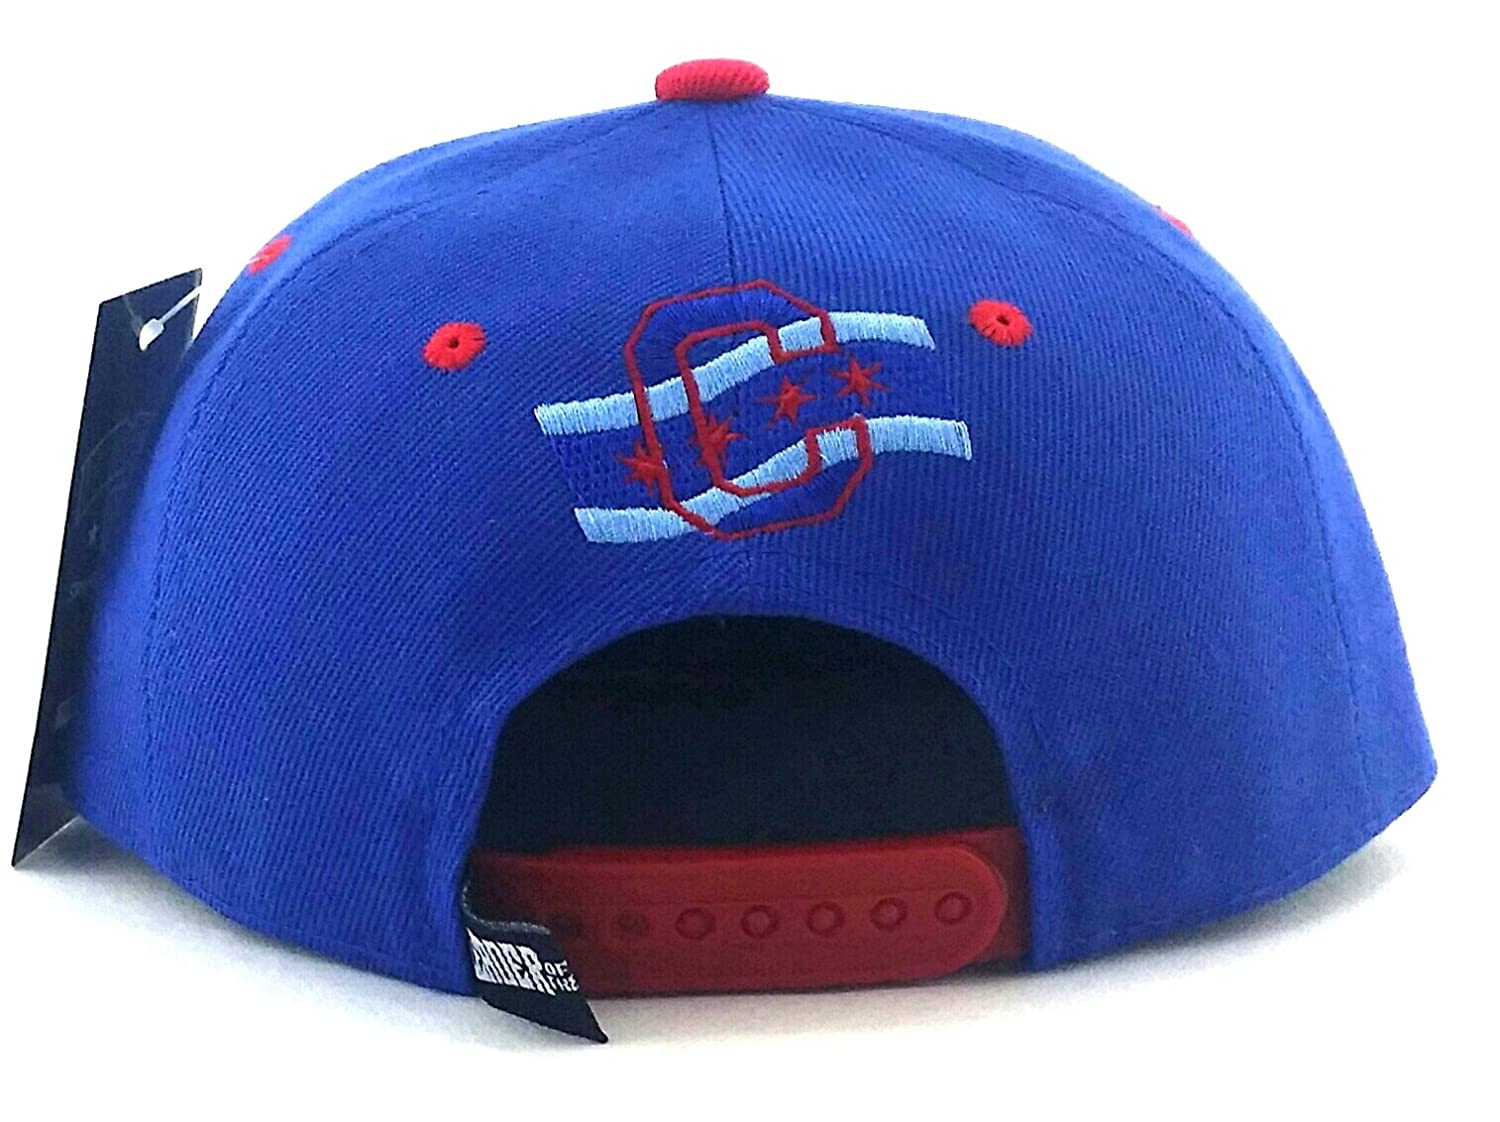 6819e1a3095 City of Chicago New Youth Kids 3 Flag Cubs Colors Blue Red Era Snapback Hat  Cap  Amazon.co.uk  Sports   Outdoors